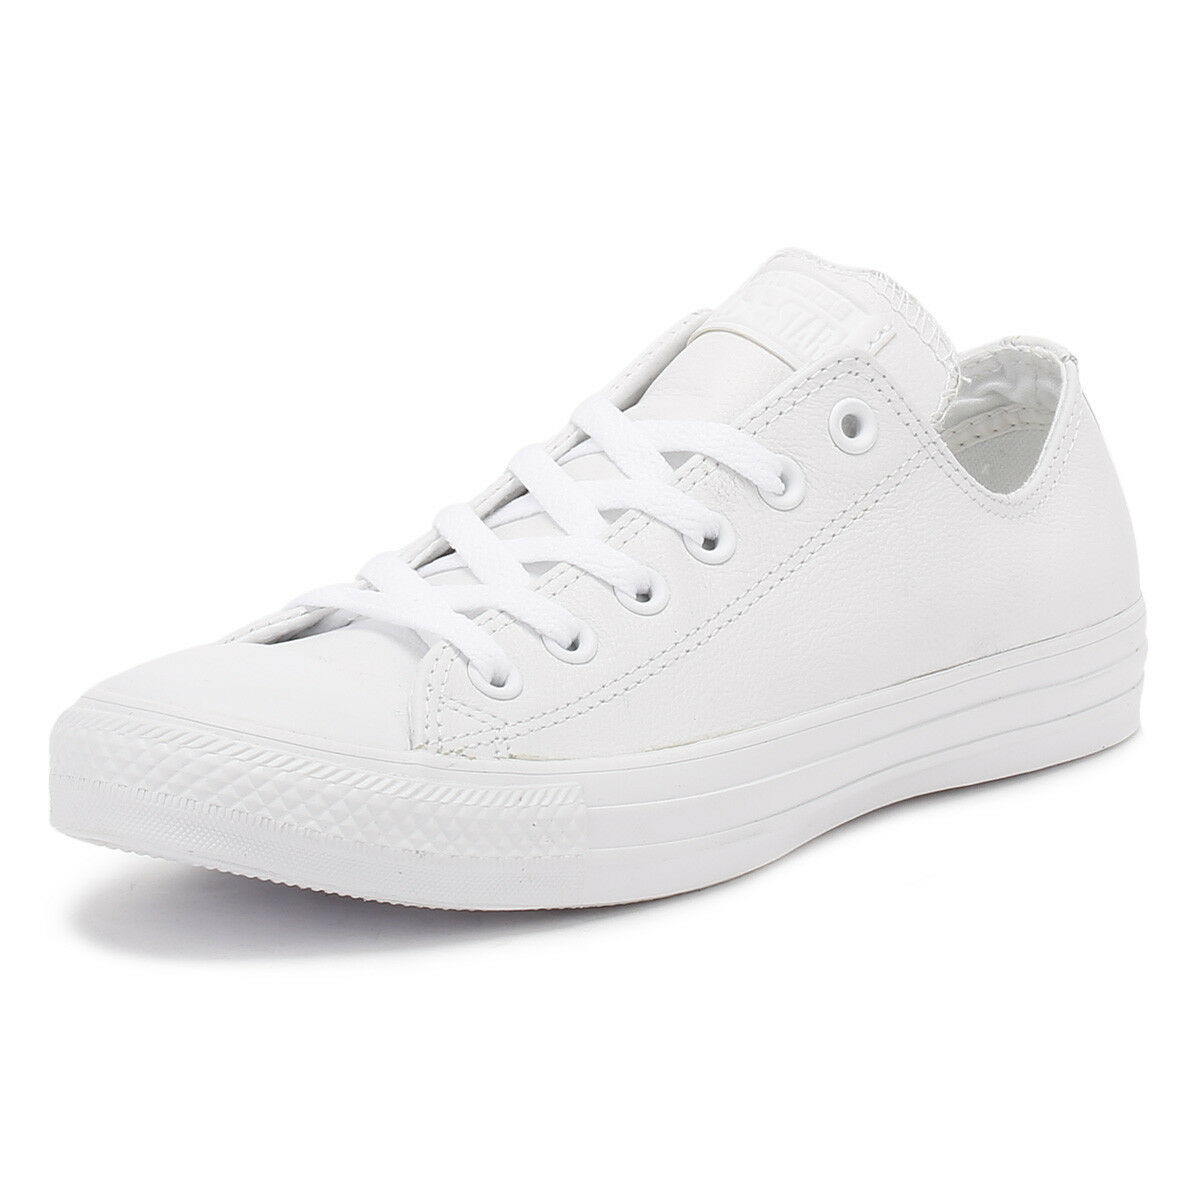 Converse Unisex White All Star OX Low Leather Trainers Mens Womens Sneakers